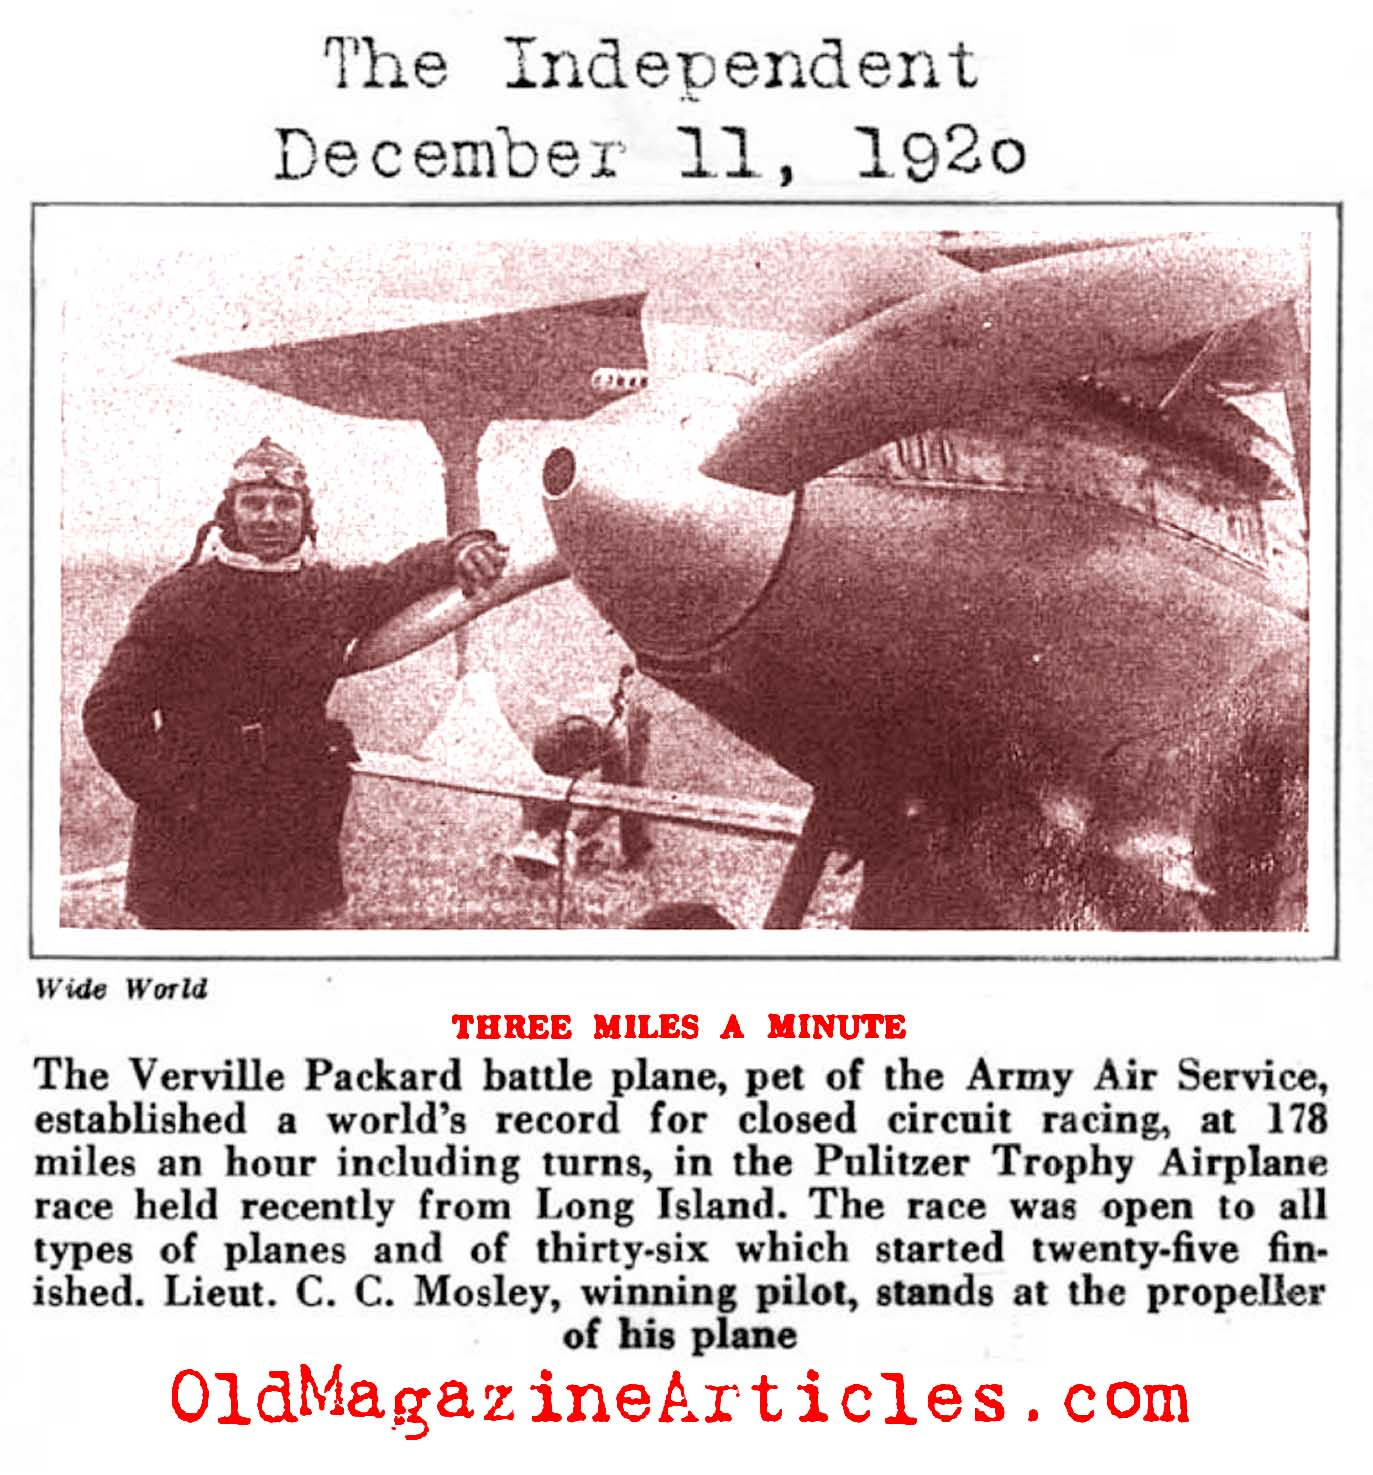 The Verville Packard Battle Plane: 178 Miles Per Hour (The Independent, 1920)